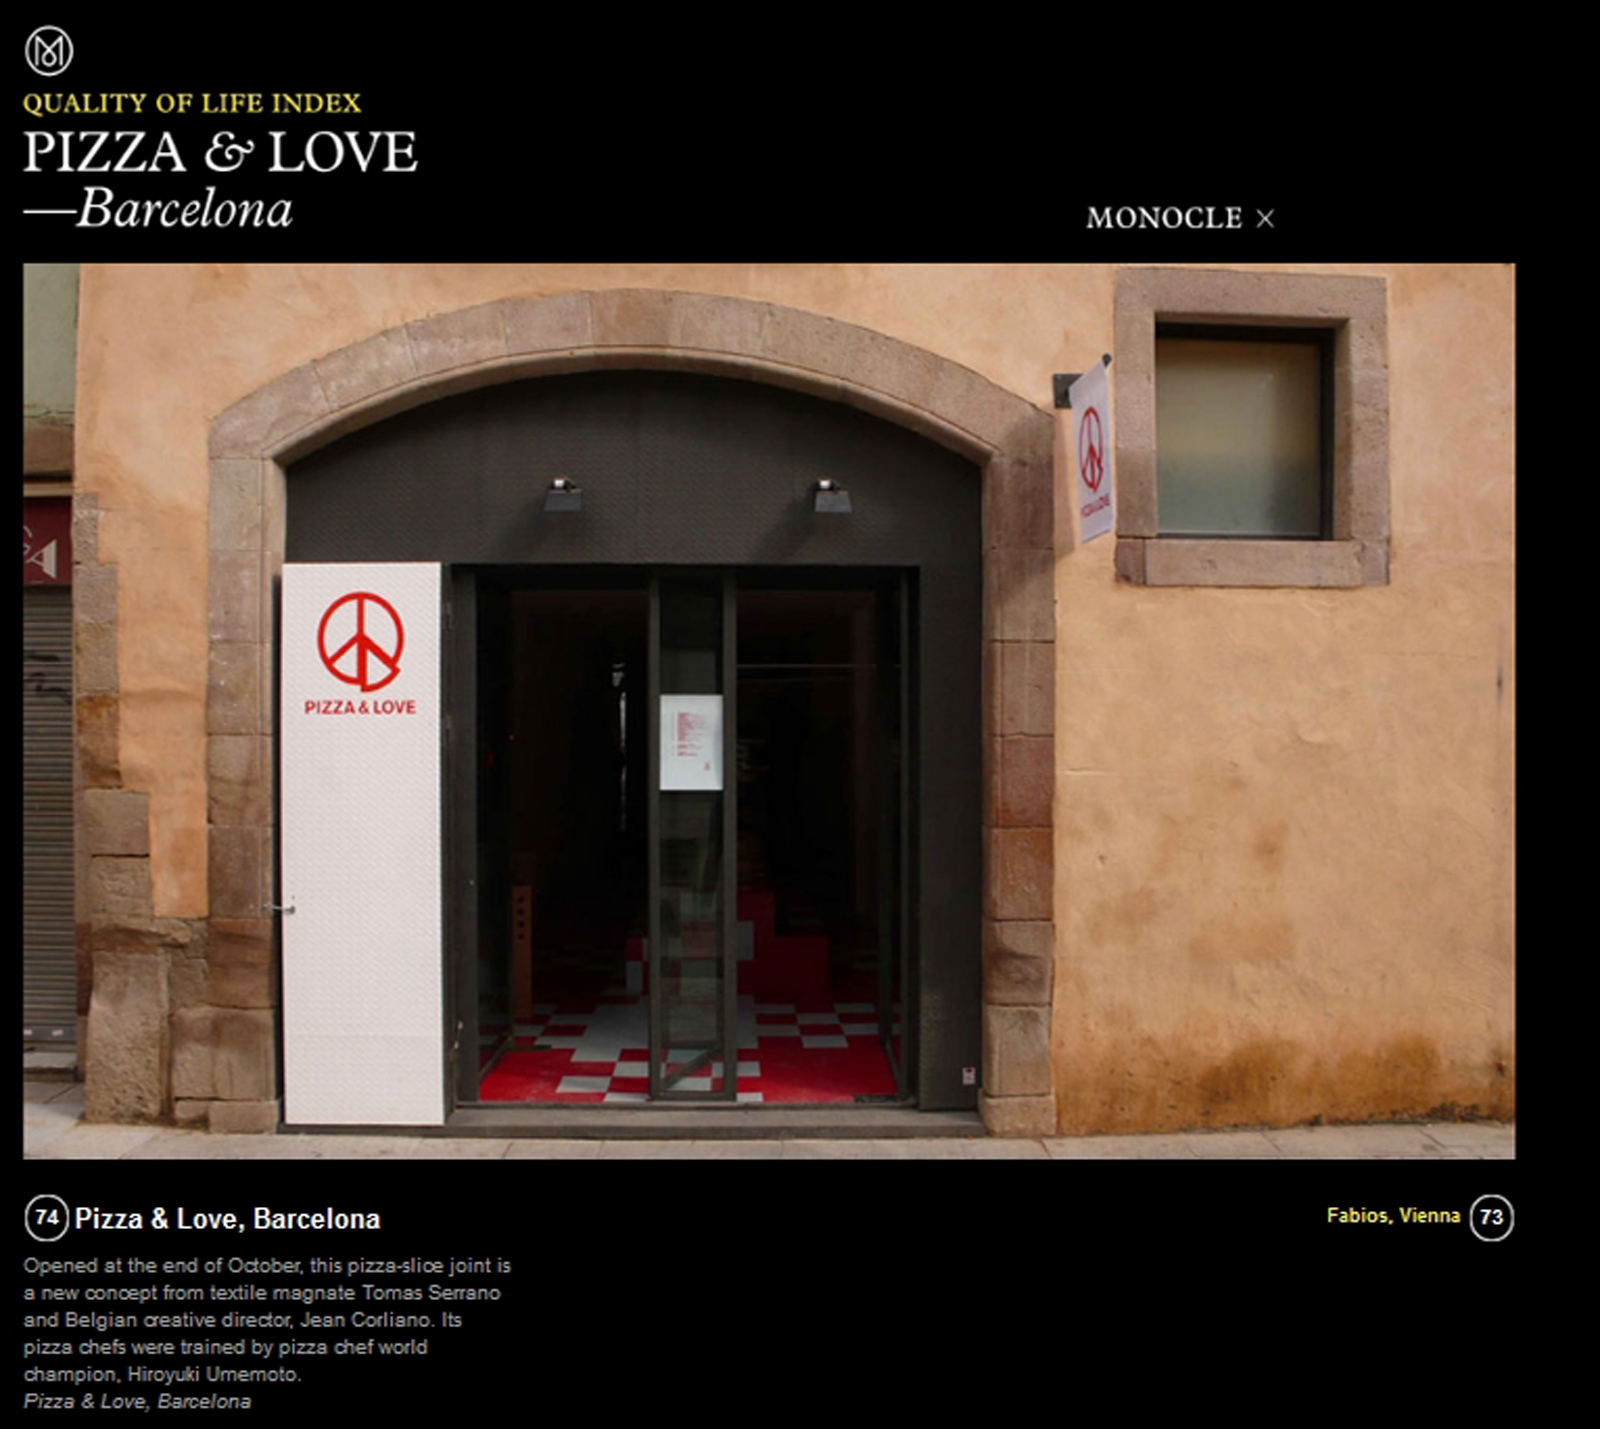 Monocle Pizza & Love, Barcelona